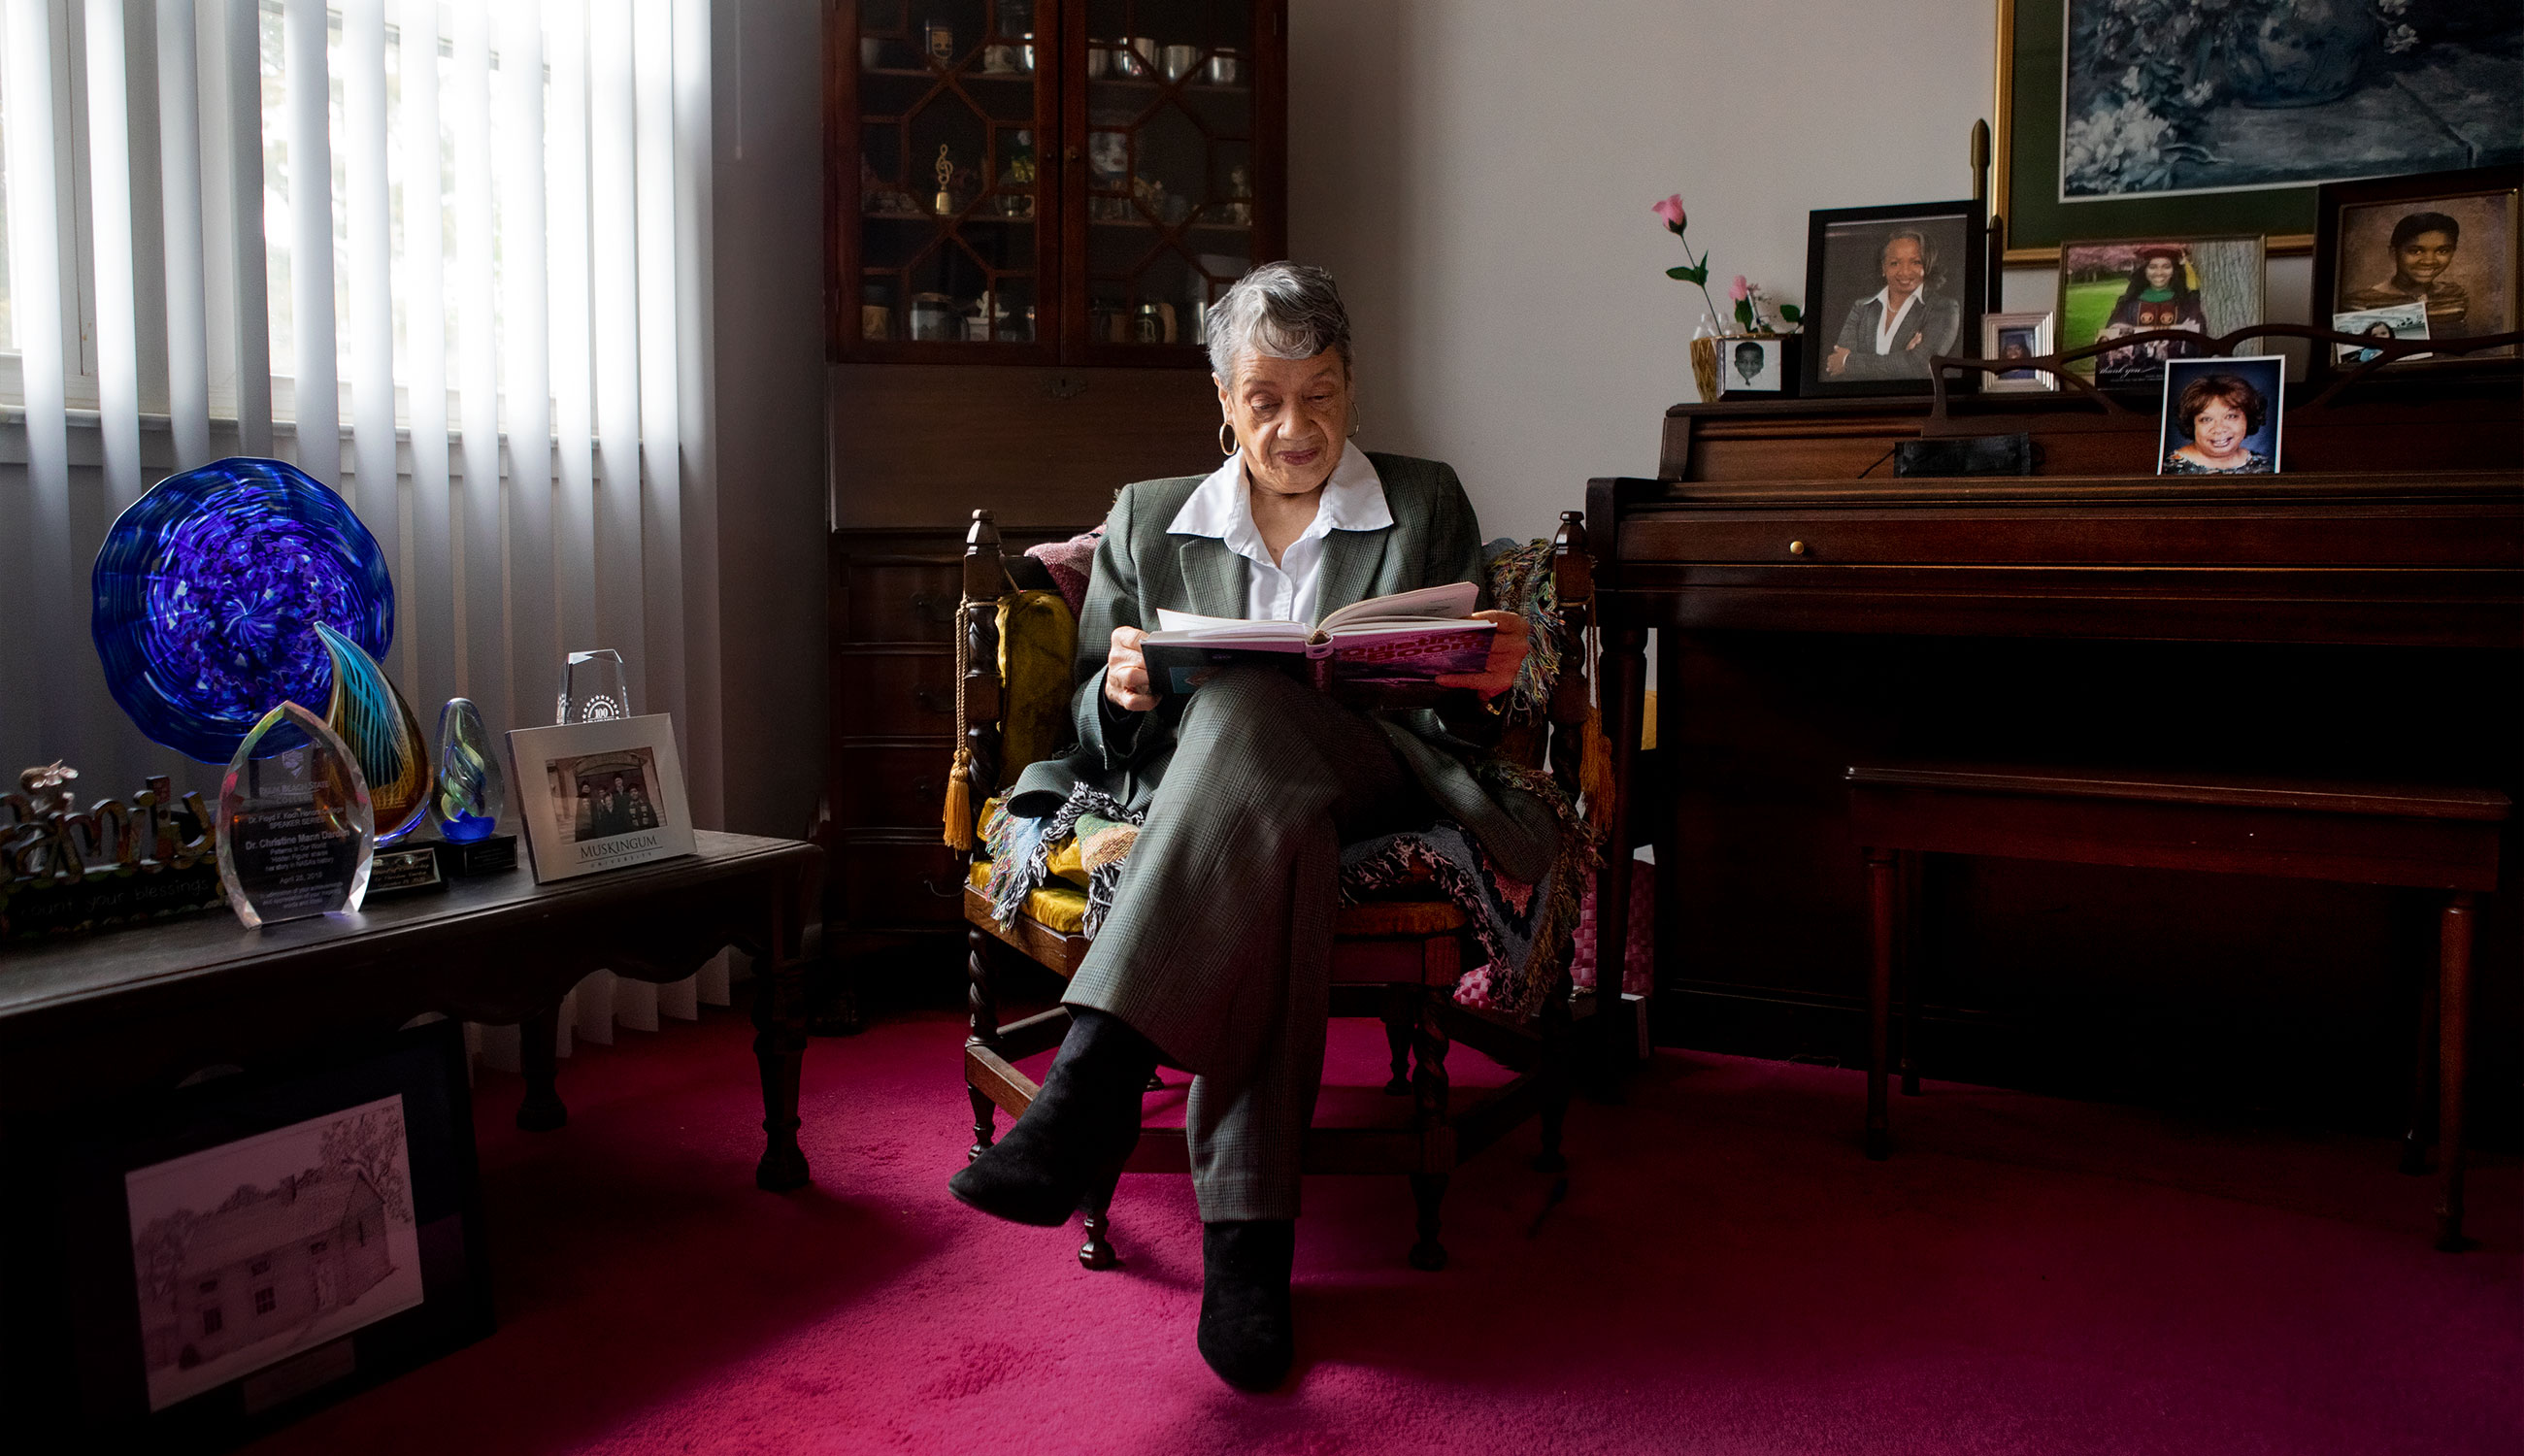 Photo of Christine Darden in a gray suit, seated reading a book in her home